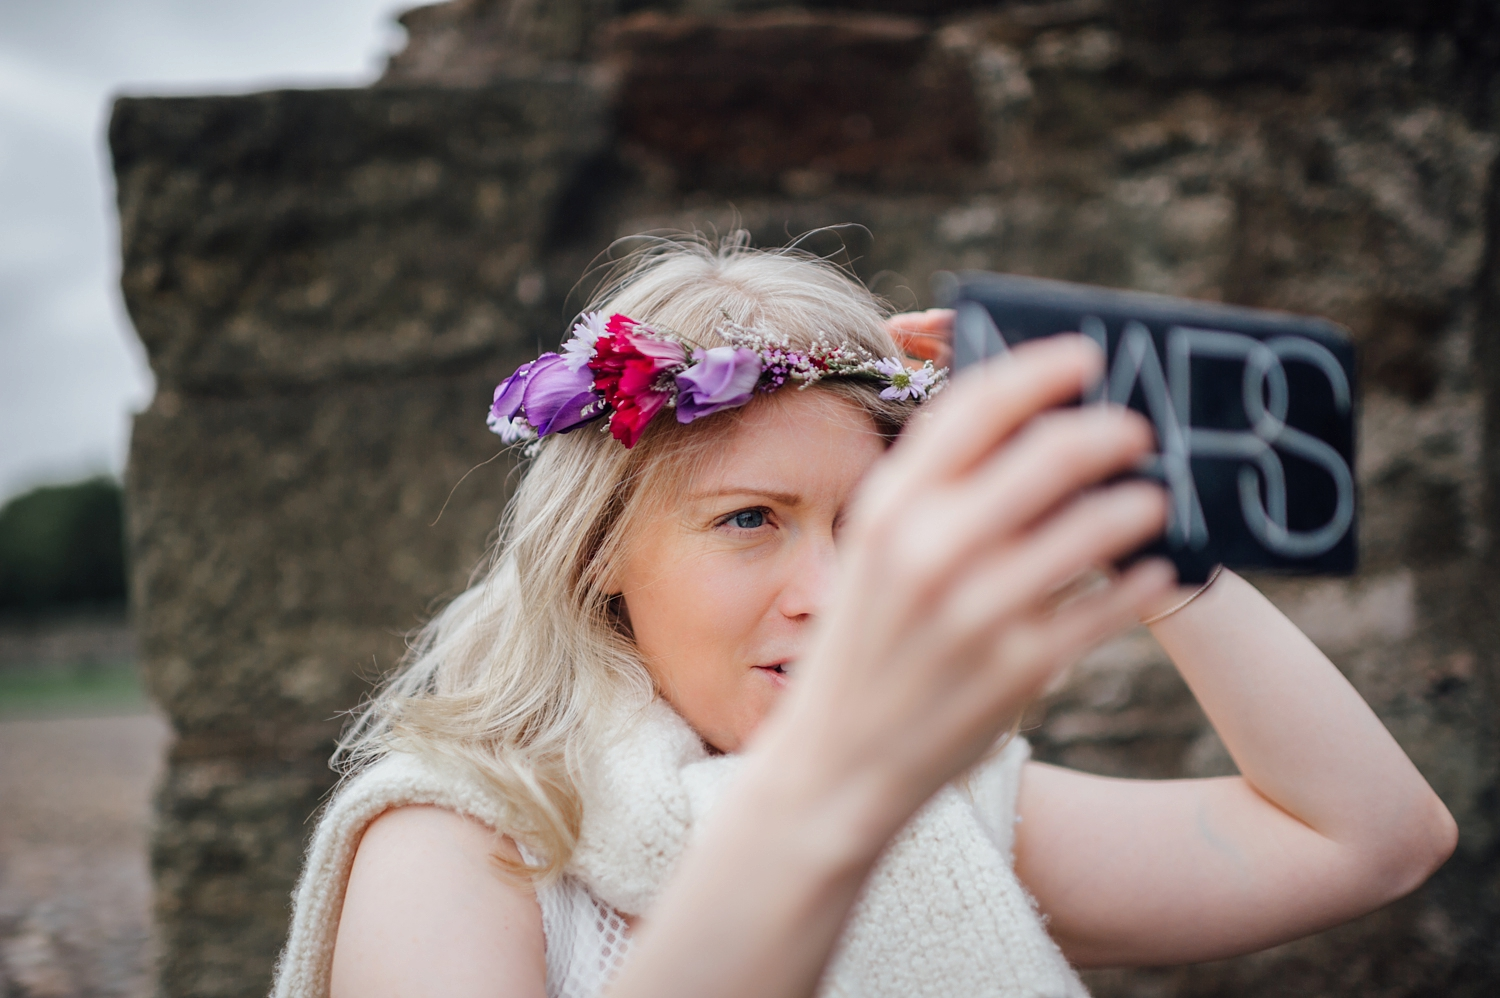 5542-lisa-devine-photography-alternative-stylish-creative-wedding-photography-glasgow-scotland-uk.JPG